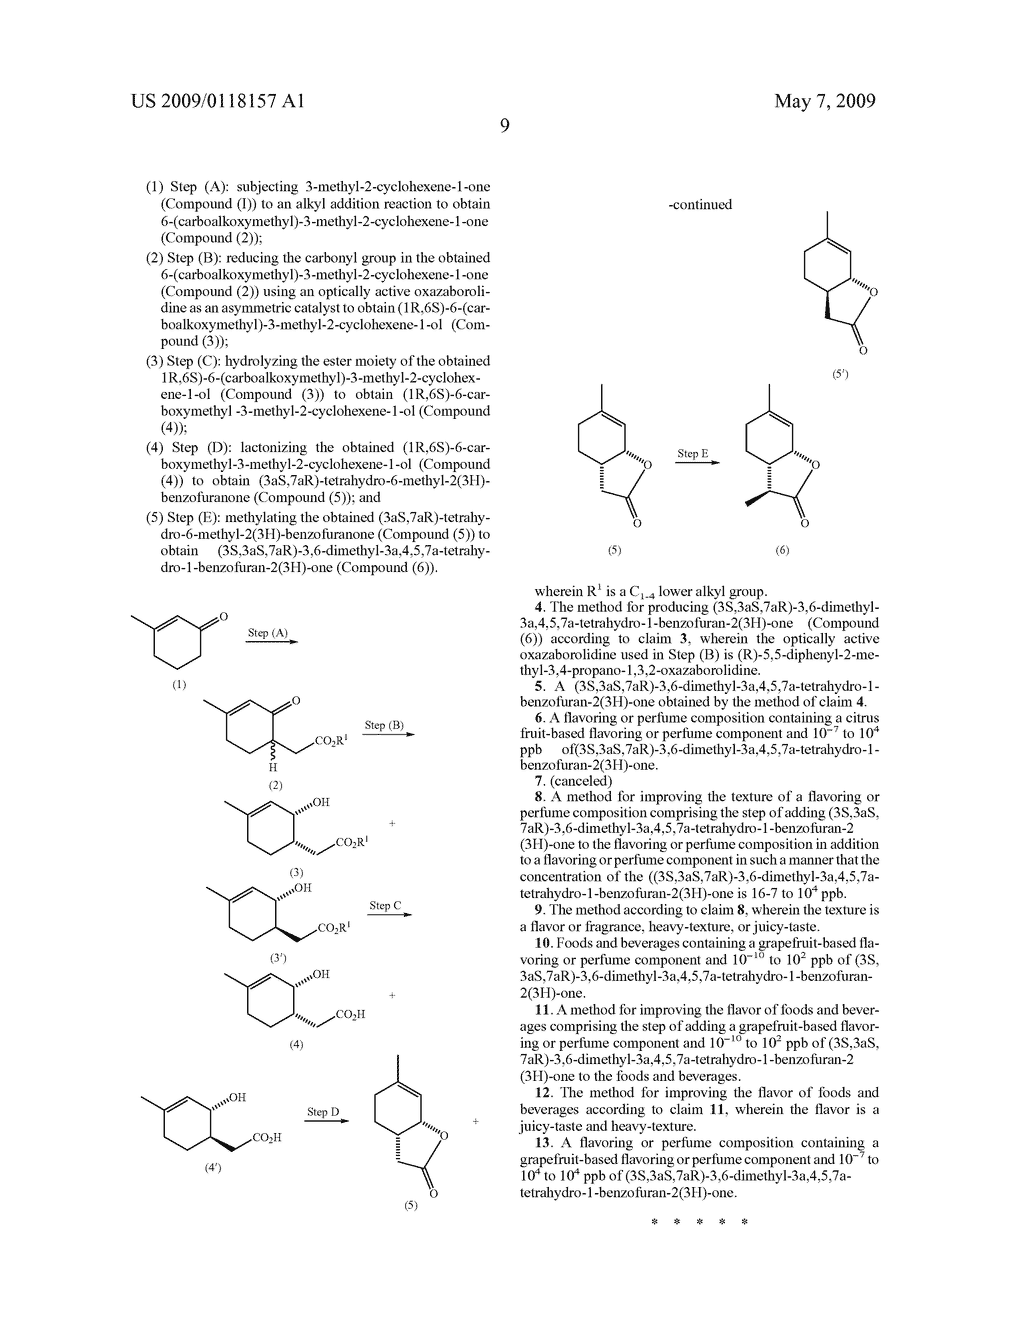 Processes For Production Of Wine Lactone And Its Intermediates And Application Of The Lactone - diagram, schematic, and image 10